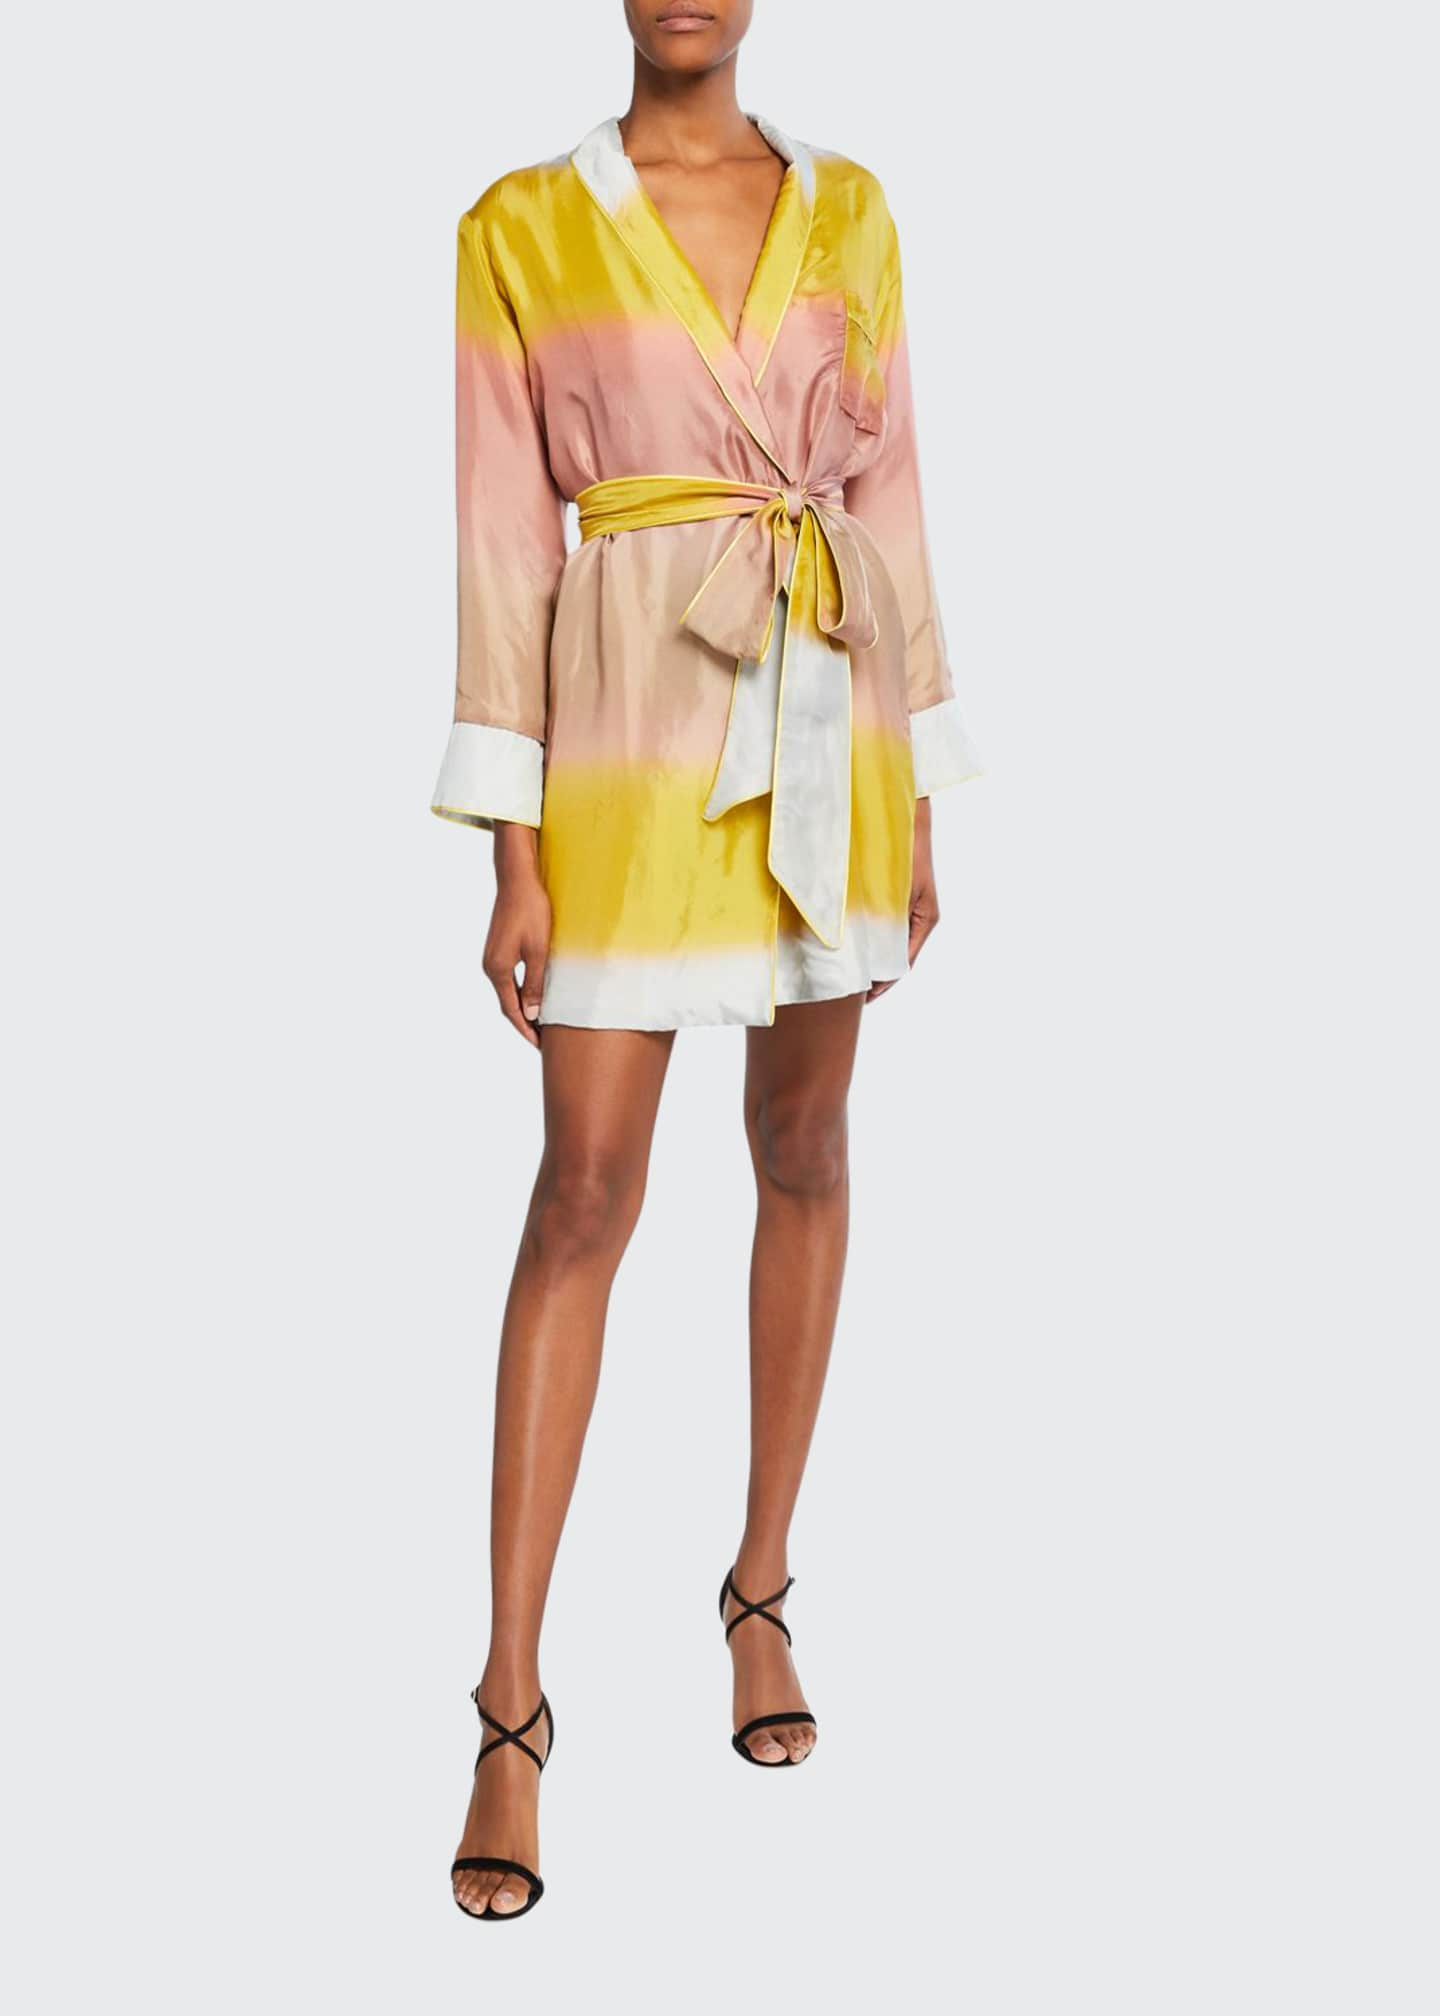 Le Superbe Horizon's West Colorblock Mini Robe Dress